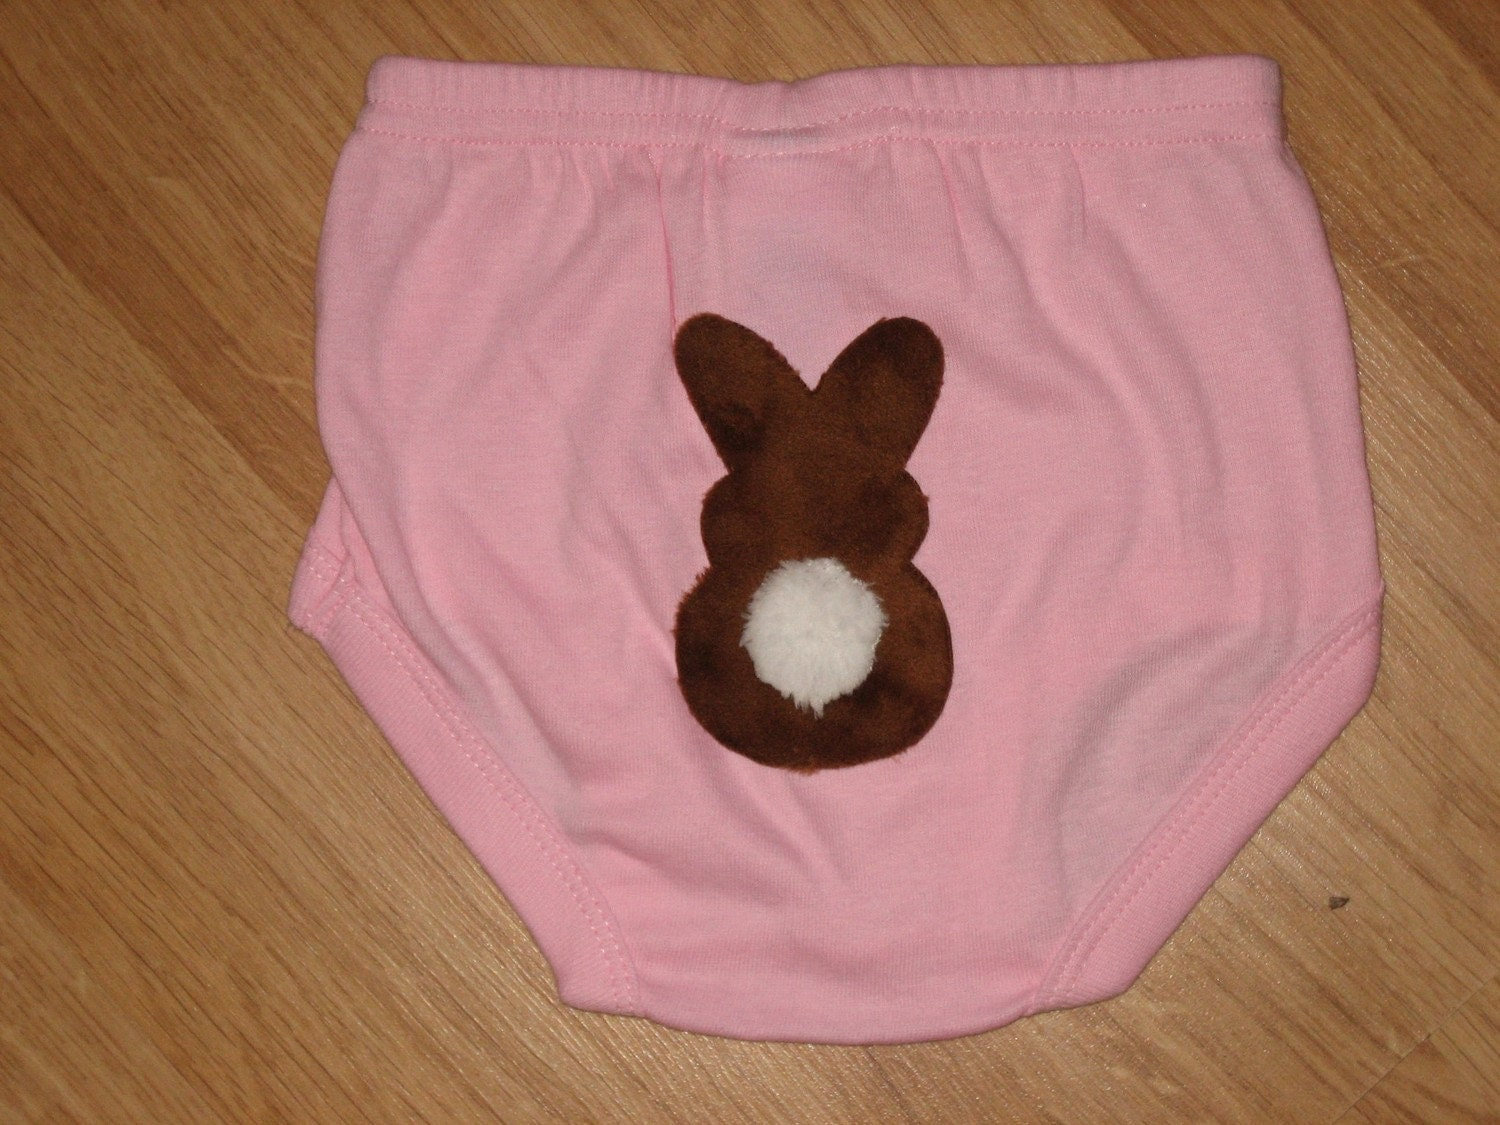 Chocolate Easter Bunny diaper cover/bloomers in Blue, Pink or White